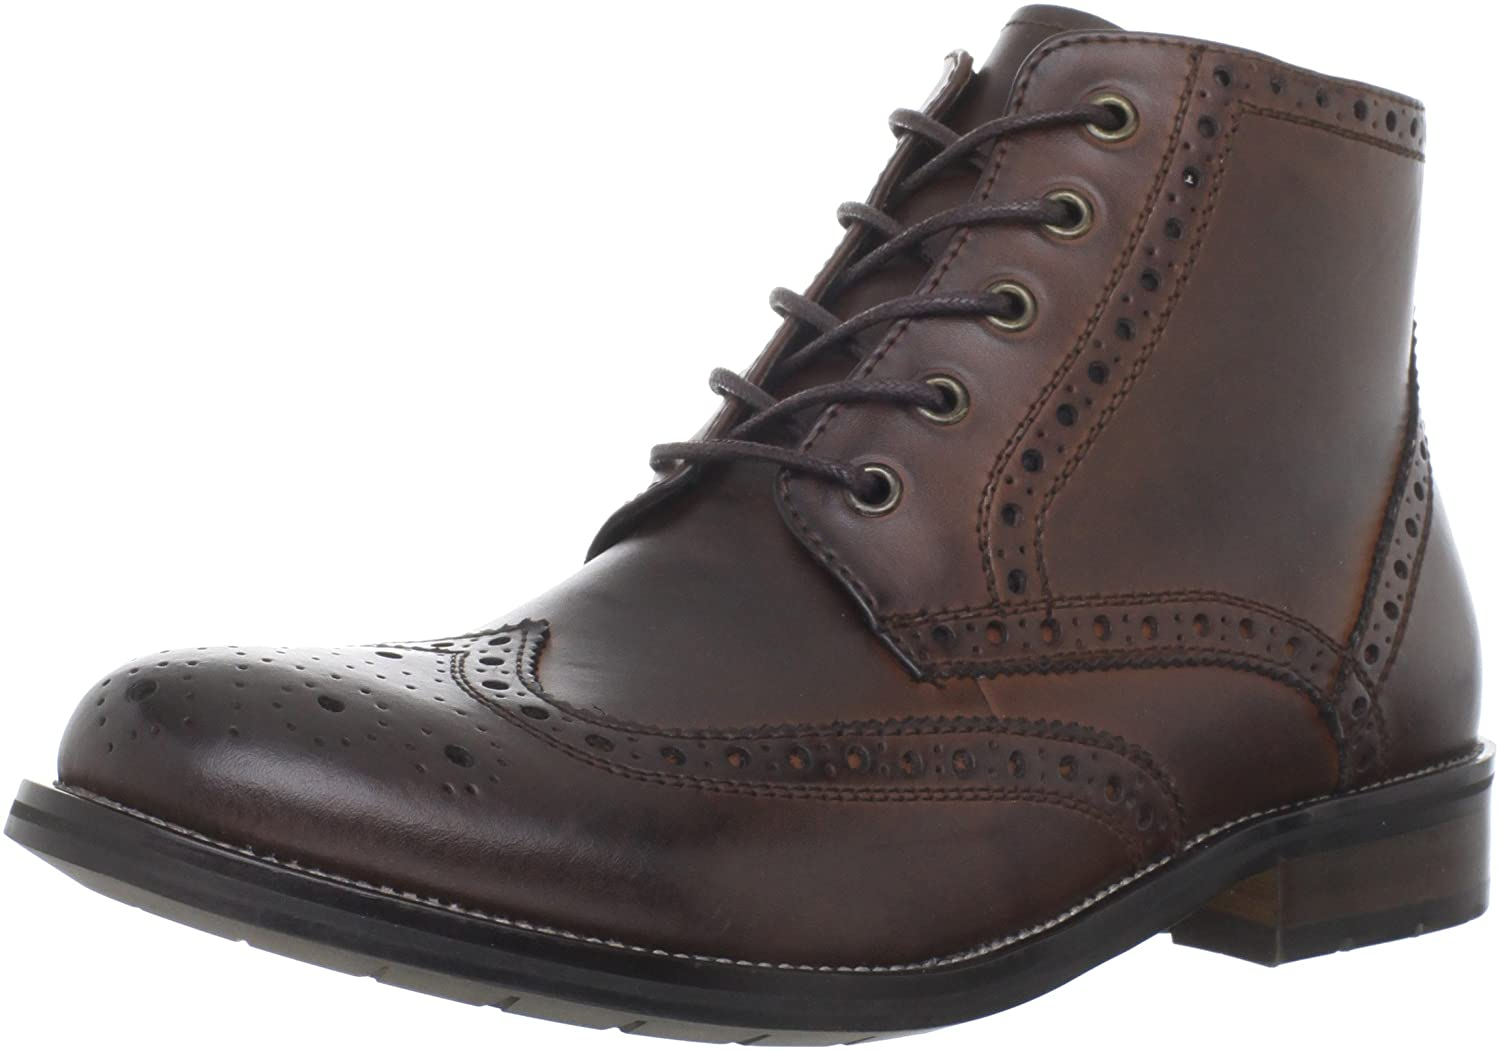 91fdfdefbd7c What To Wear With Boots Men - Top 10 Boots for Men